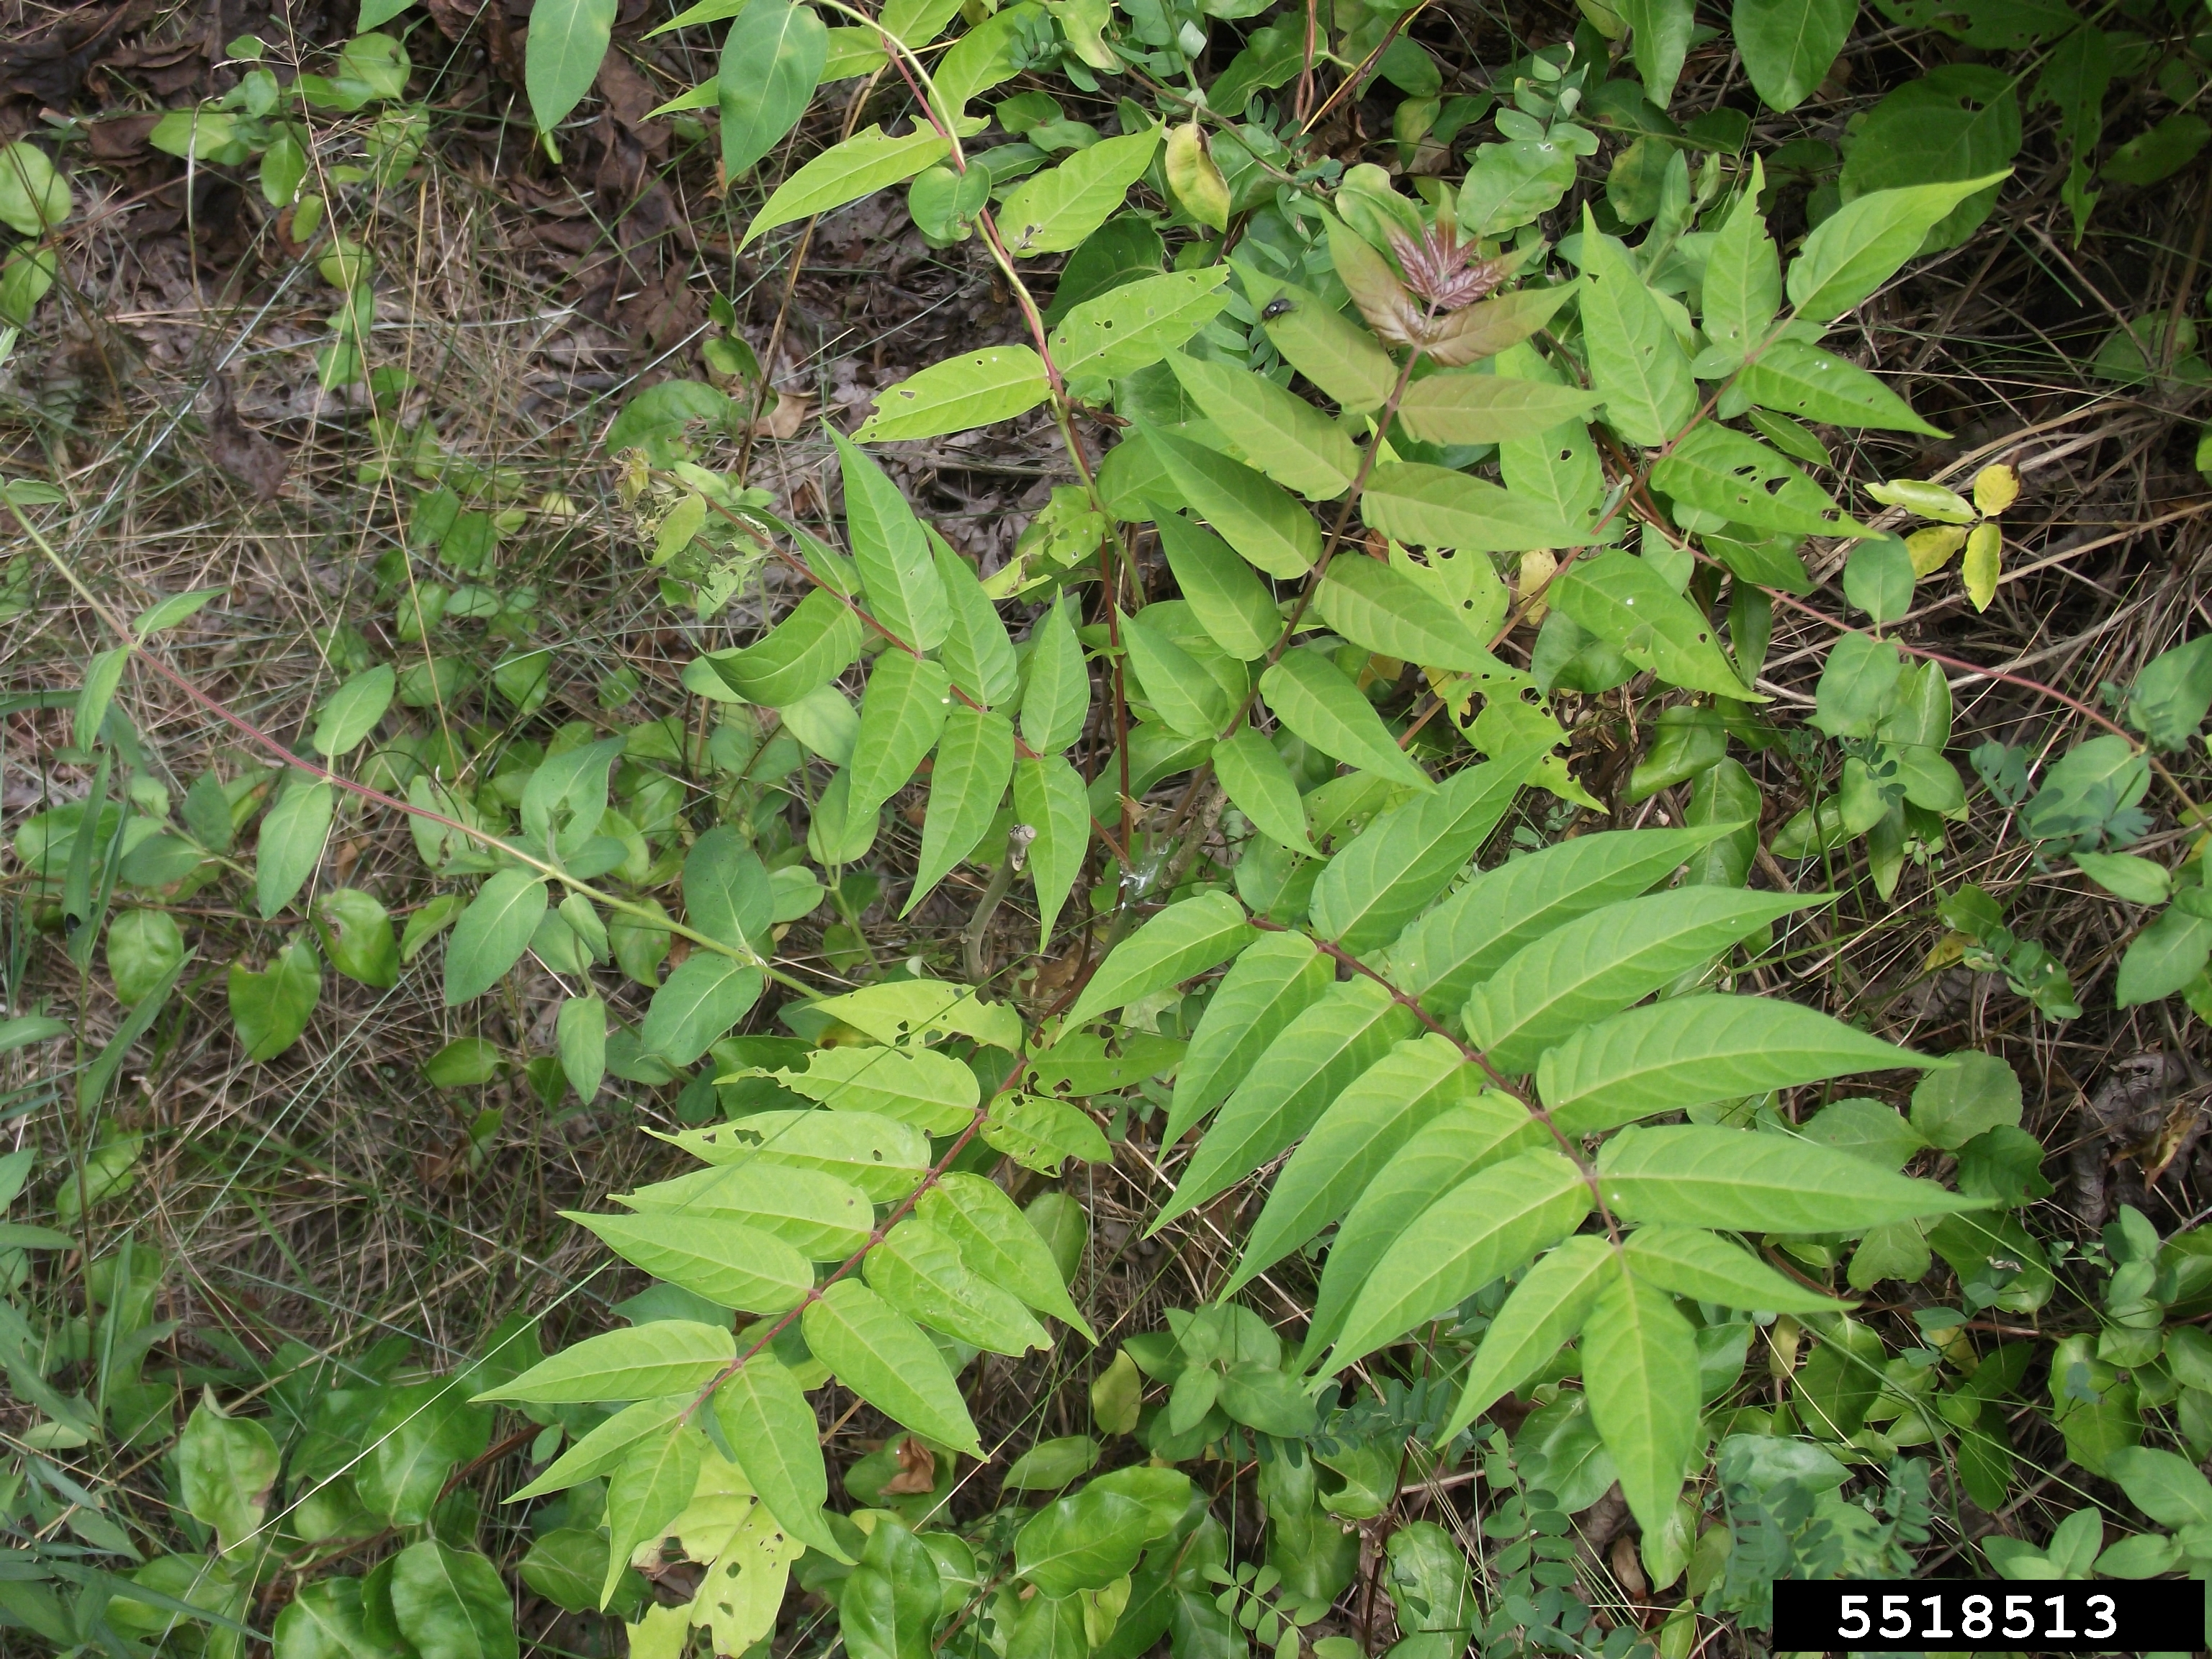 Tree-of-heaven is an invasive weedy tree. The leaves have a strong peanut butter smell when crushed. (Credit: Richard Gardner, Bugwood.org)